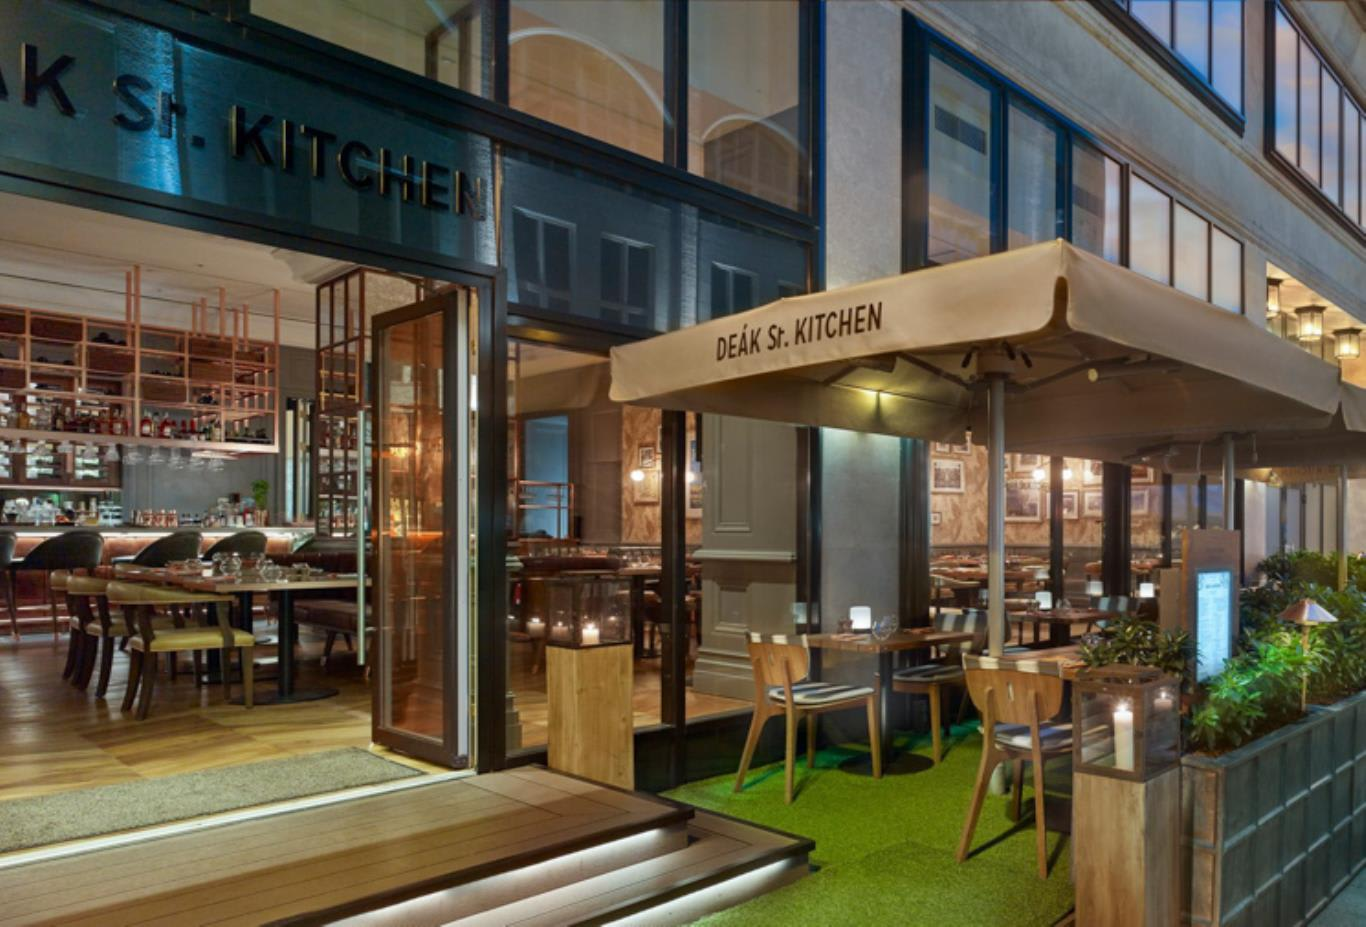 Deak Street Kitchen